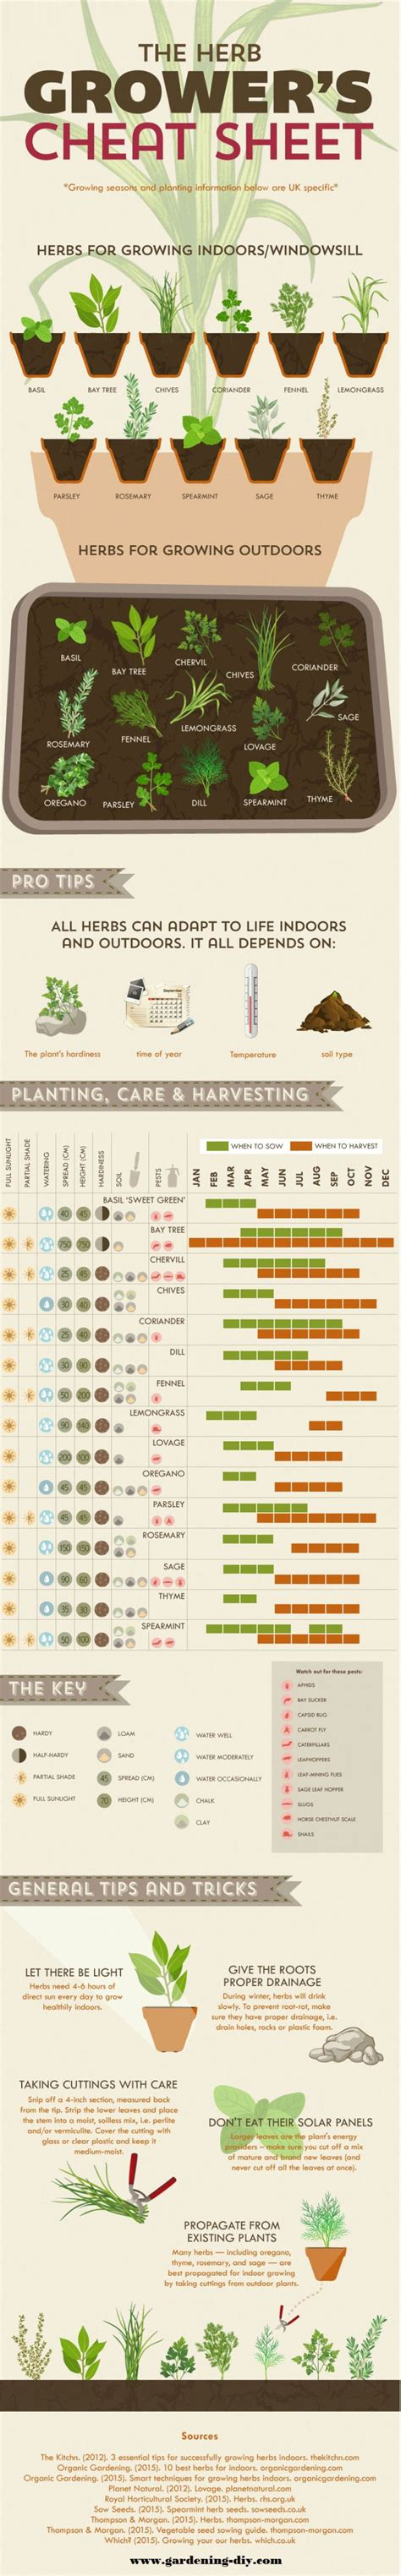 herb grower s cheat sheet 17 best images about herbs on pinterest gardens lungs and apothecaries